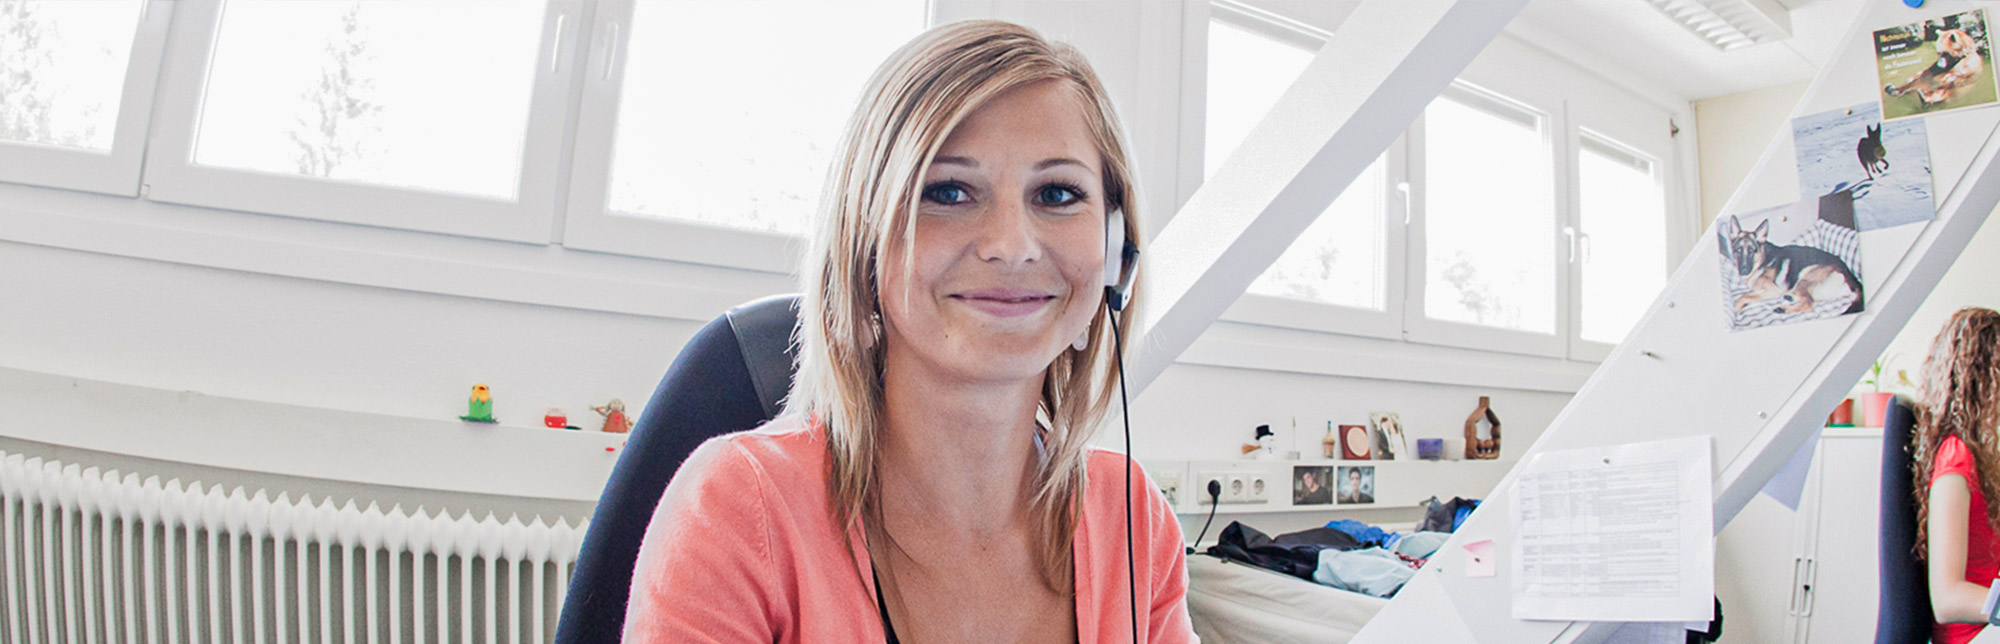 Market Research Manager (M/W/D) für innovative Hairstyling Geräte